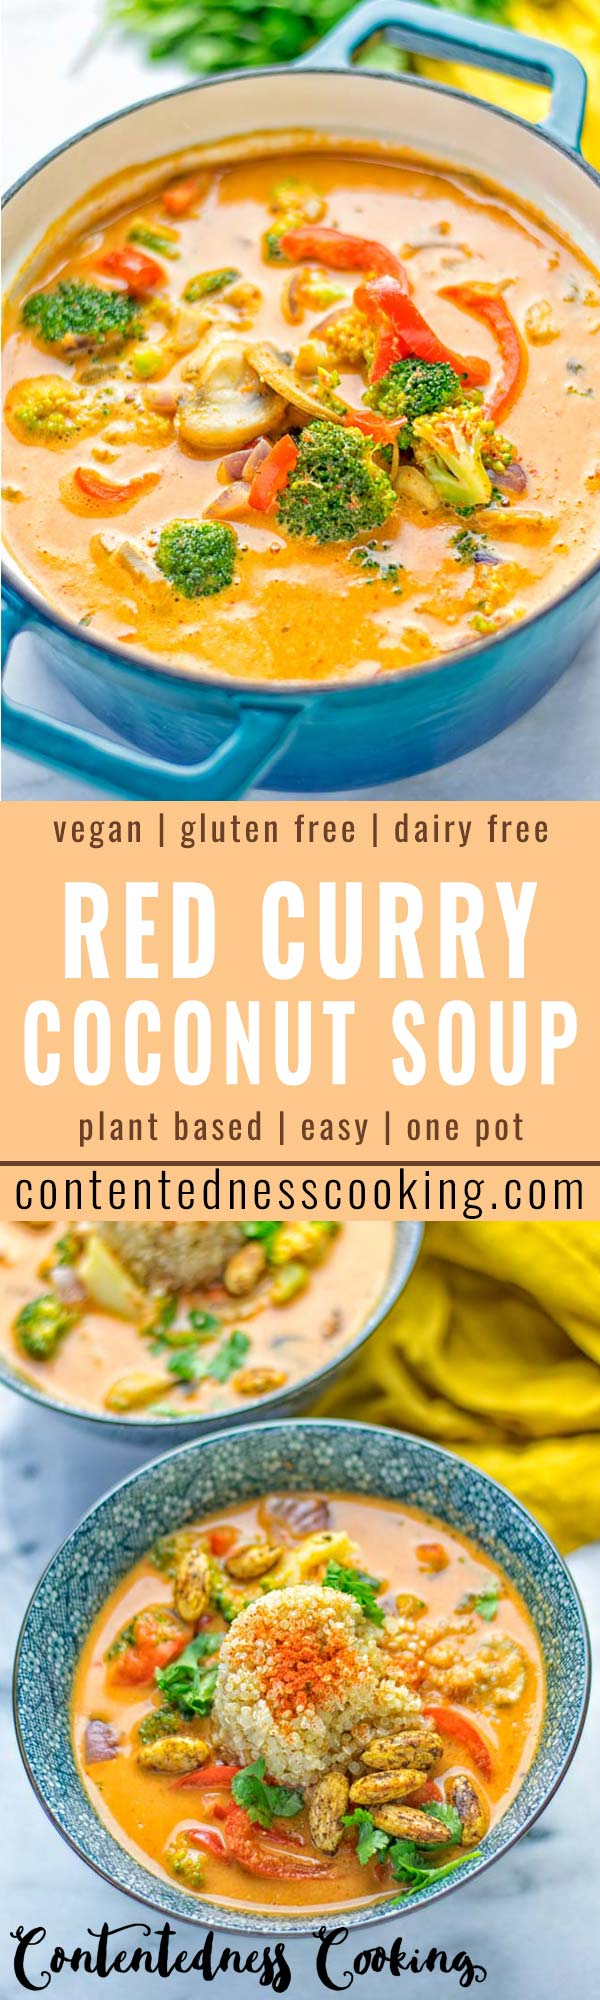 This Red Curry Coconut Soup is a super easy one pot meal and packed with such amazing flavors. It's creamy and naturally vegan, gluten free. It's an amazing dairy free alternative for lunch, dinner, meal preparation, that the whole family will love, or work lunches. Try it now and know how ridiculously easy delicious food can be. #vegan #glutenfree #dairyfree #contentednesscooking #dinner #lunch #onepotmeals #dairyfree #worklunchideas #curry #easyfood #vegetarian #soup #mealprep